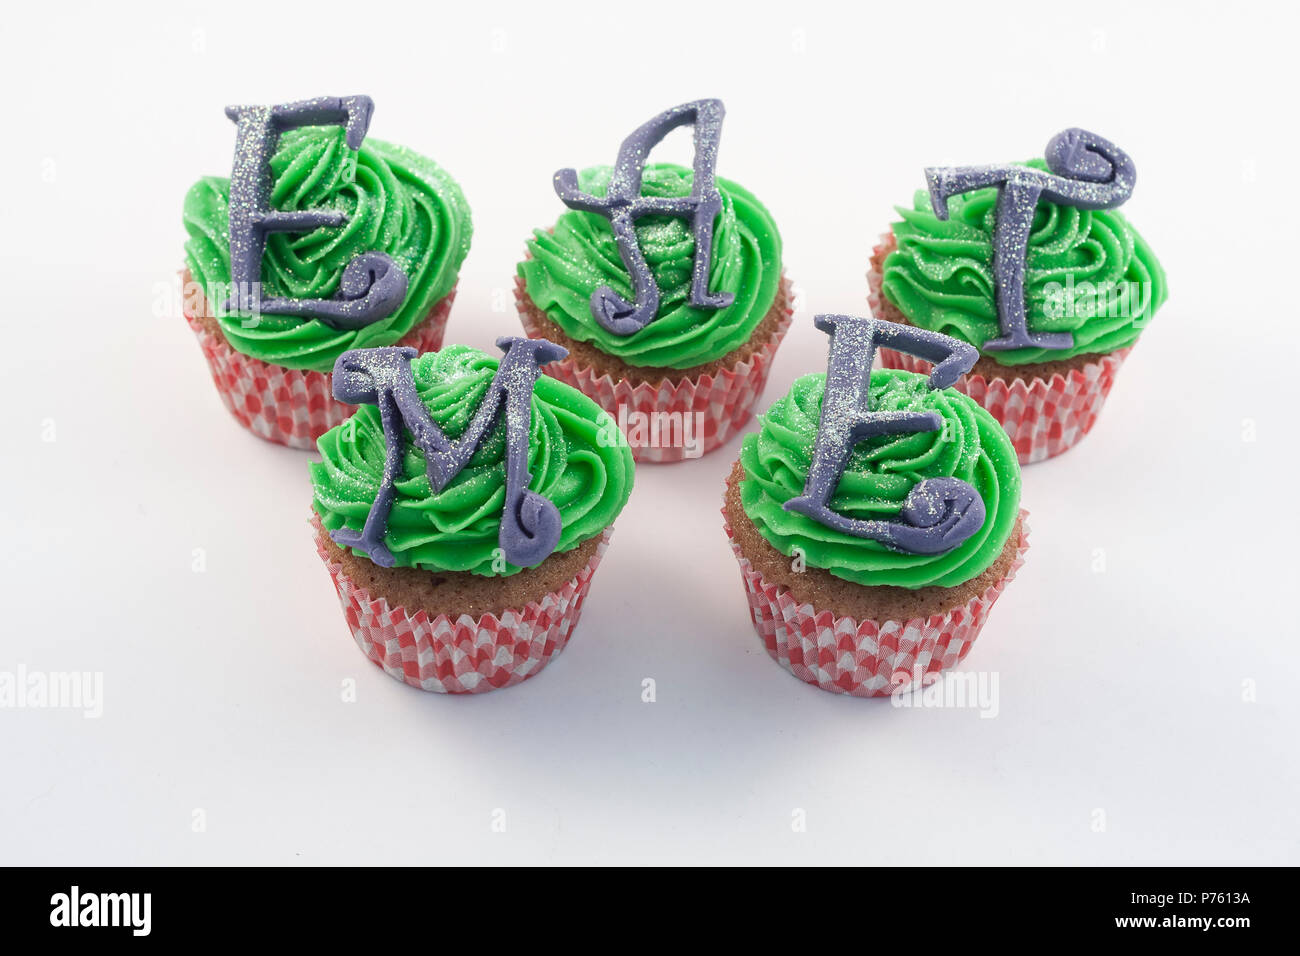 Several Cupcake decorated with alice in wonderland - Stock Image